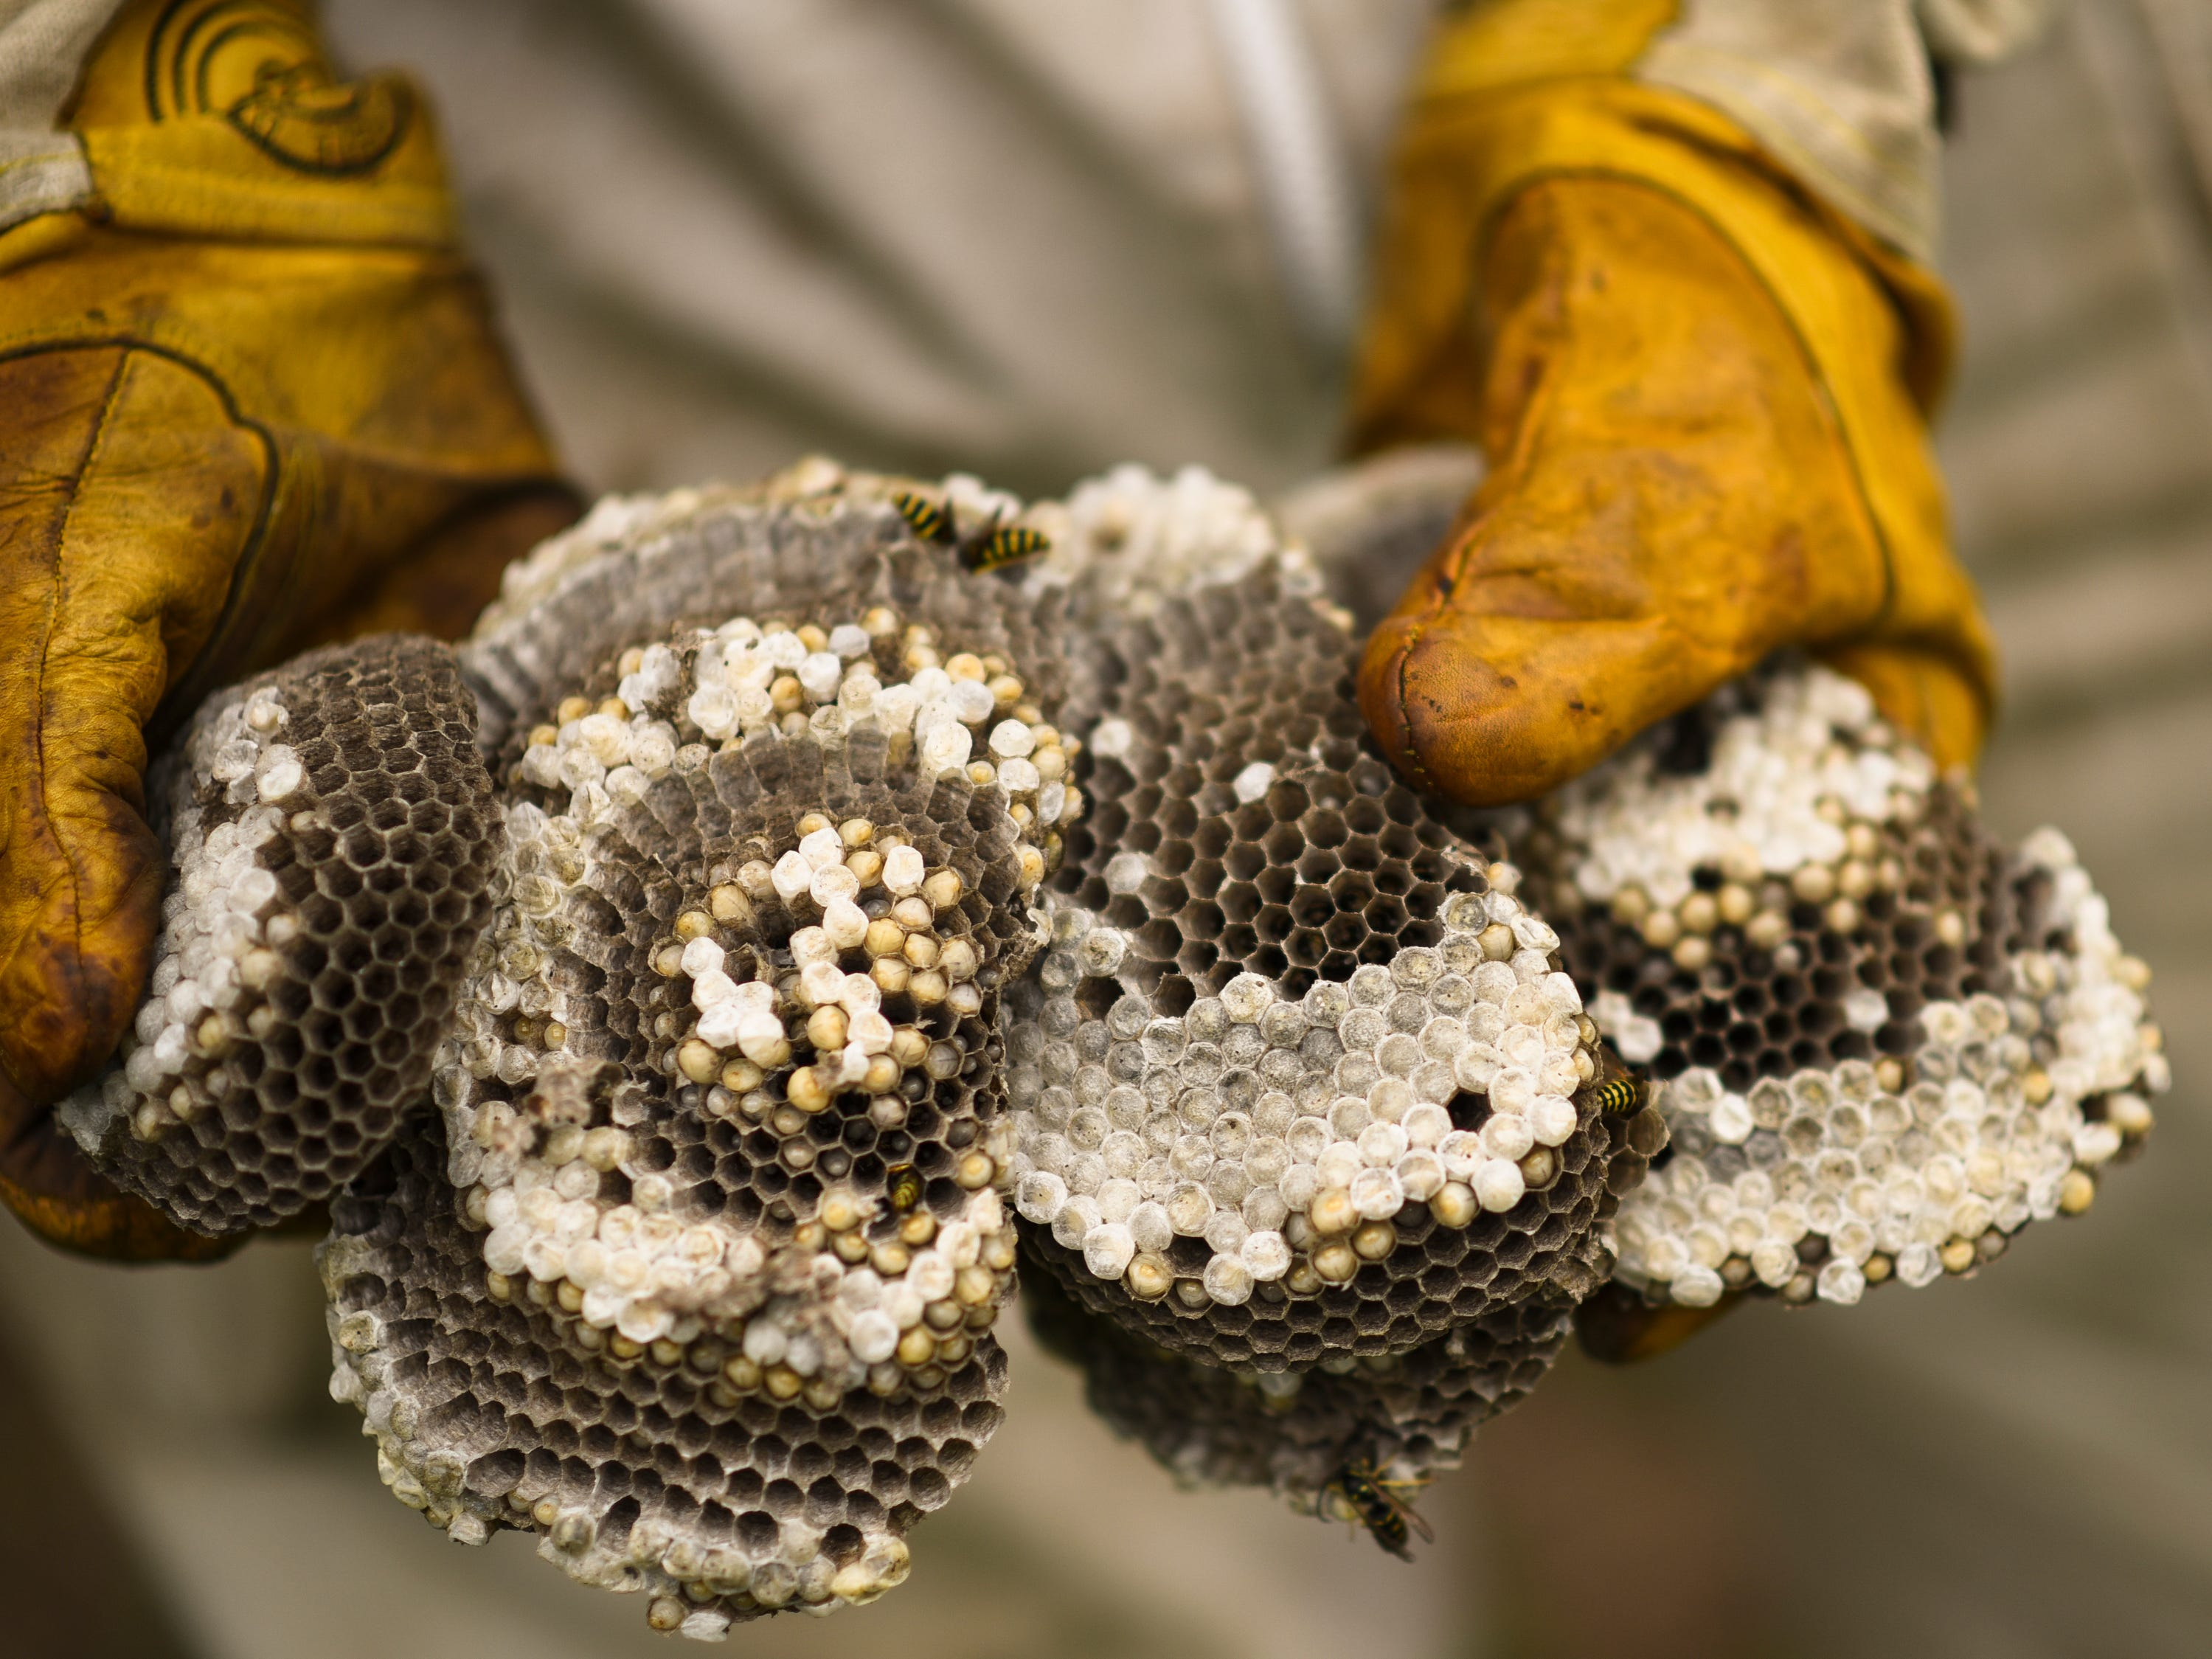 Travis Rockafellow of Perry reveals layers, or combs within a yellow hornet nest, Thursday, Aug. 16, 2018, that he removed at a farm in Haslett.  He is a Perry Middle School teacher who has collects stinging insects and sells them to labs for their venom.